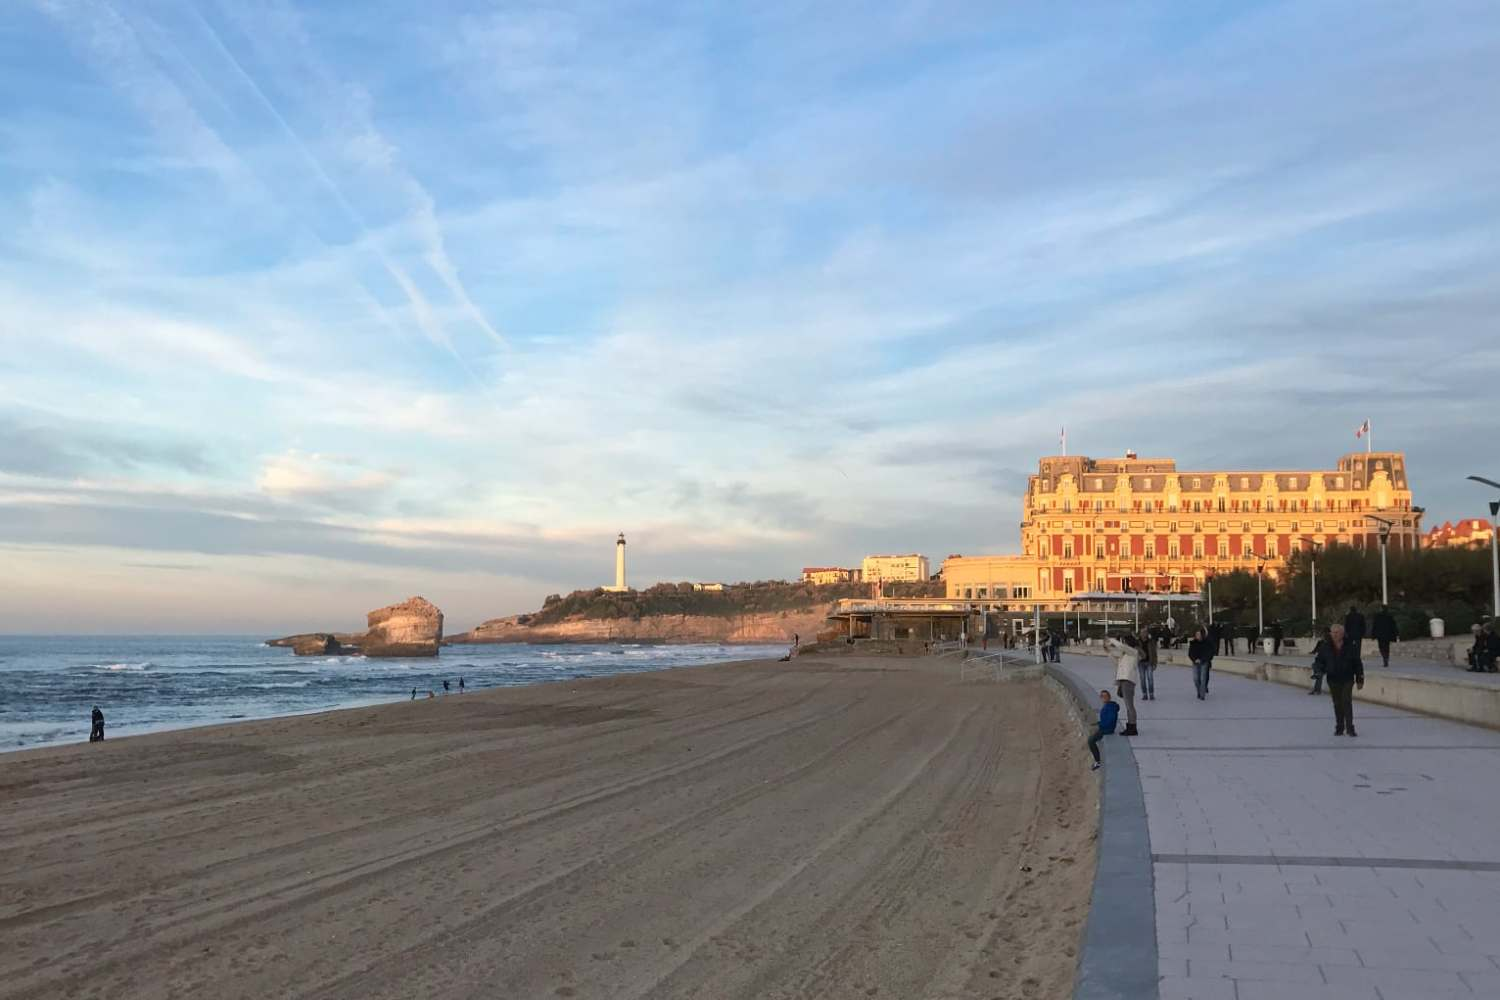 Grande Plage and the lighthouse in Biarritz, France